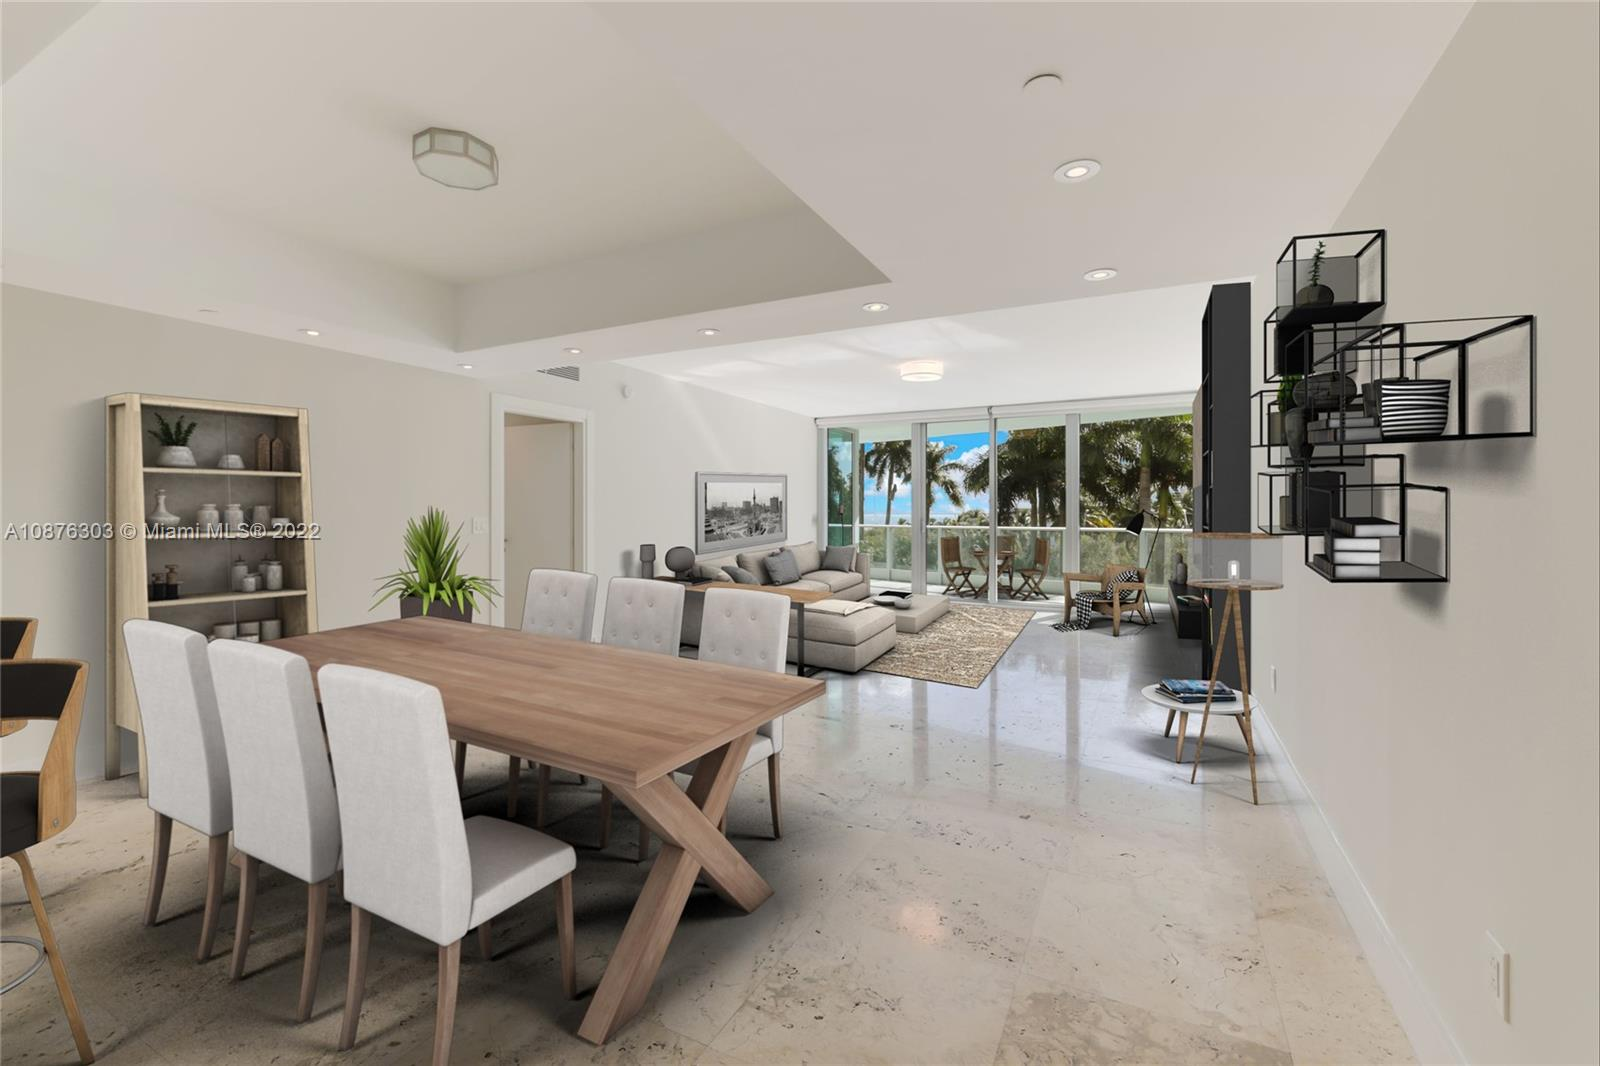 Grovenor House #504 - 2627 S Bayshore Dr #504, Miami, FL 33133